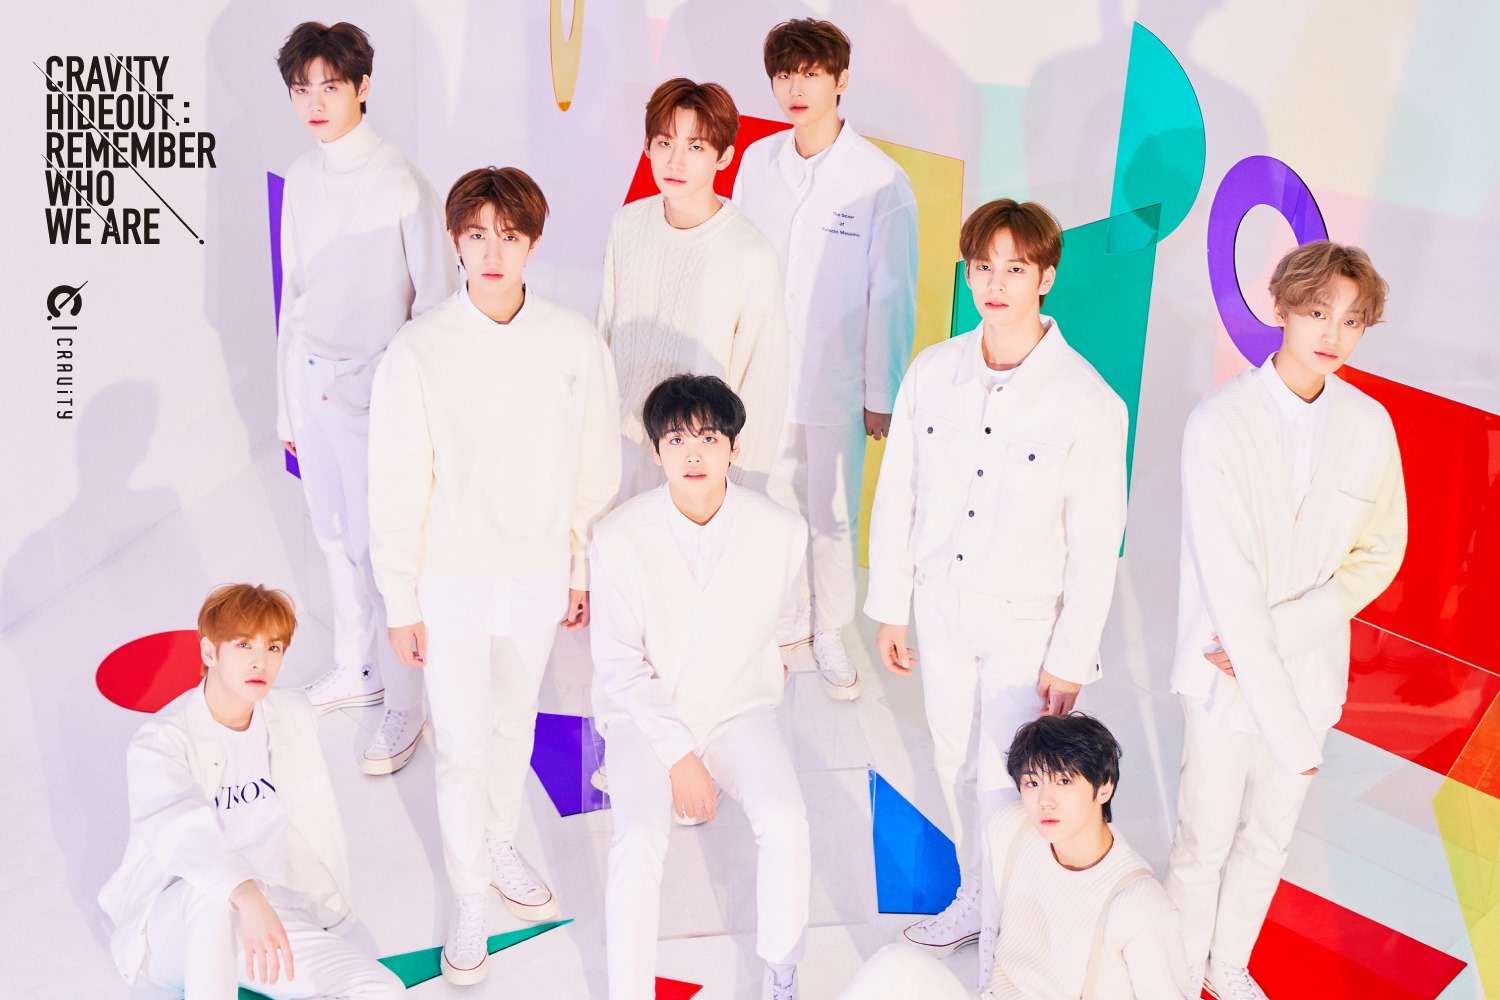 Group CRAVITY - SEASON 1, HIDEOUT : REMEMBER WHO WE ARE teaser image (Photo Credit=Starship Entertainment)